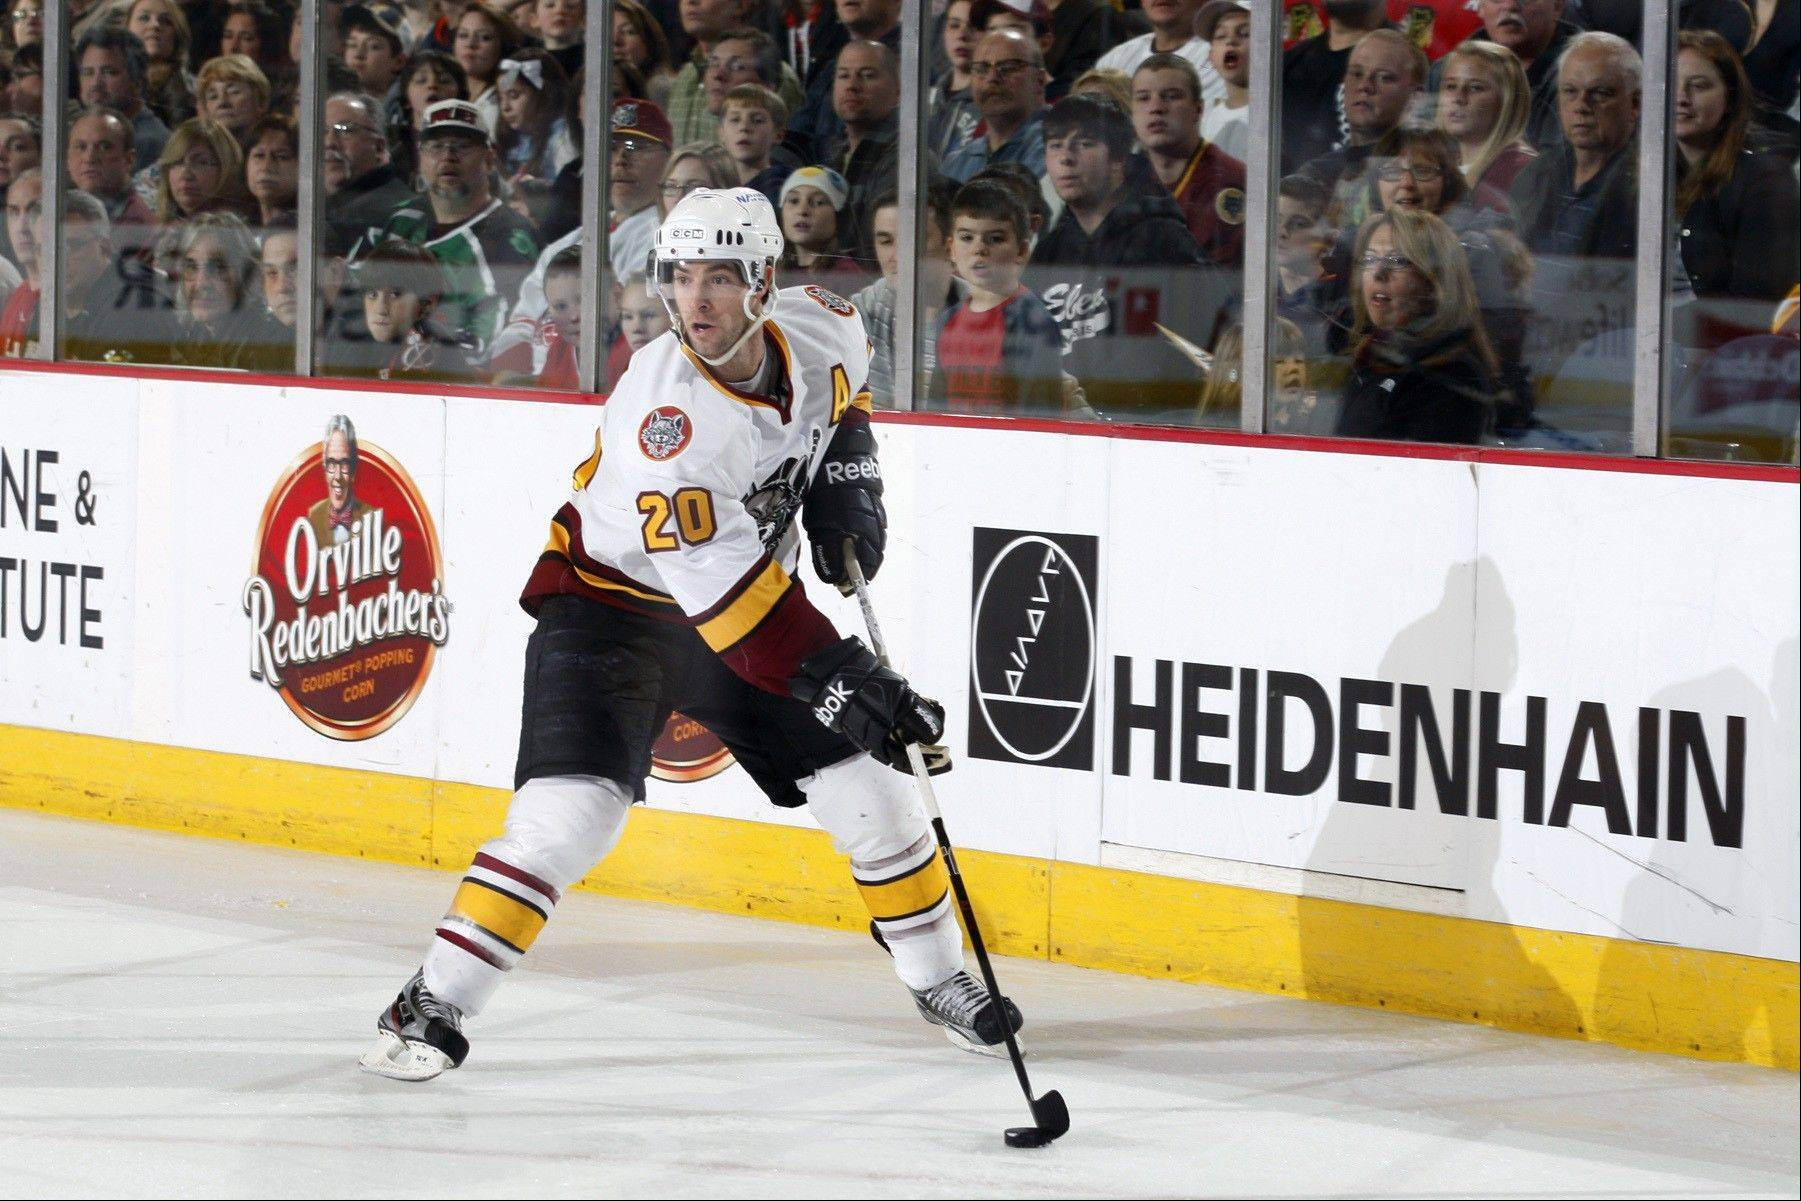 Wolves winger Darren Haydar, who will be presented with the club's Dan Snyder Man of the Year award before Saturday's home game, likes the way his team is playing as they get ready for the AHL playoffs. Haydar had 20 goals and 34 assists heading into Friday night's action.